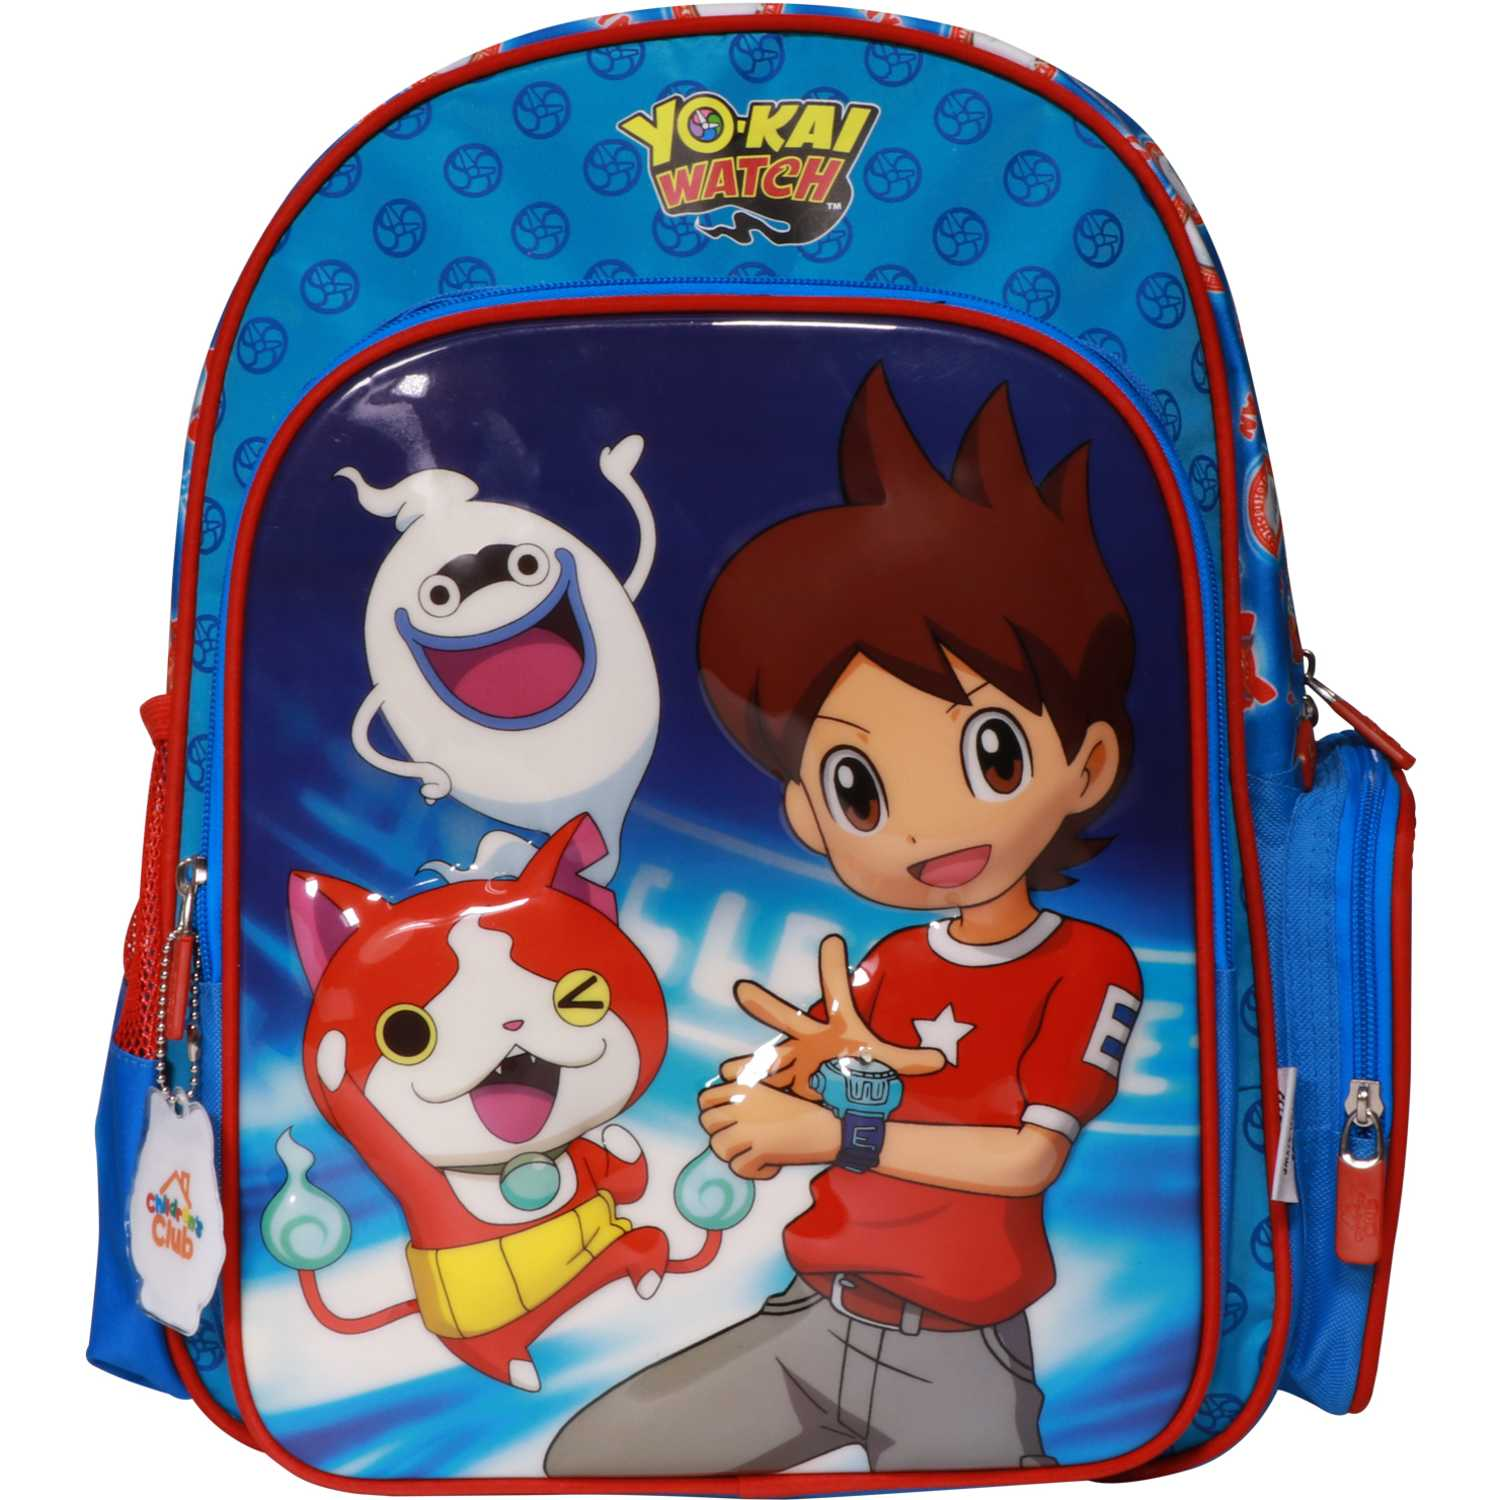 YO-KAI WATCH Mochila Yokai Watch Azul Mochilas